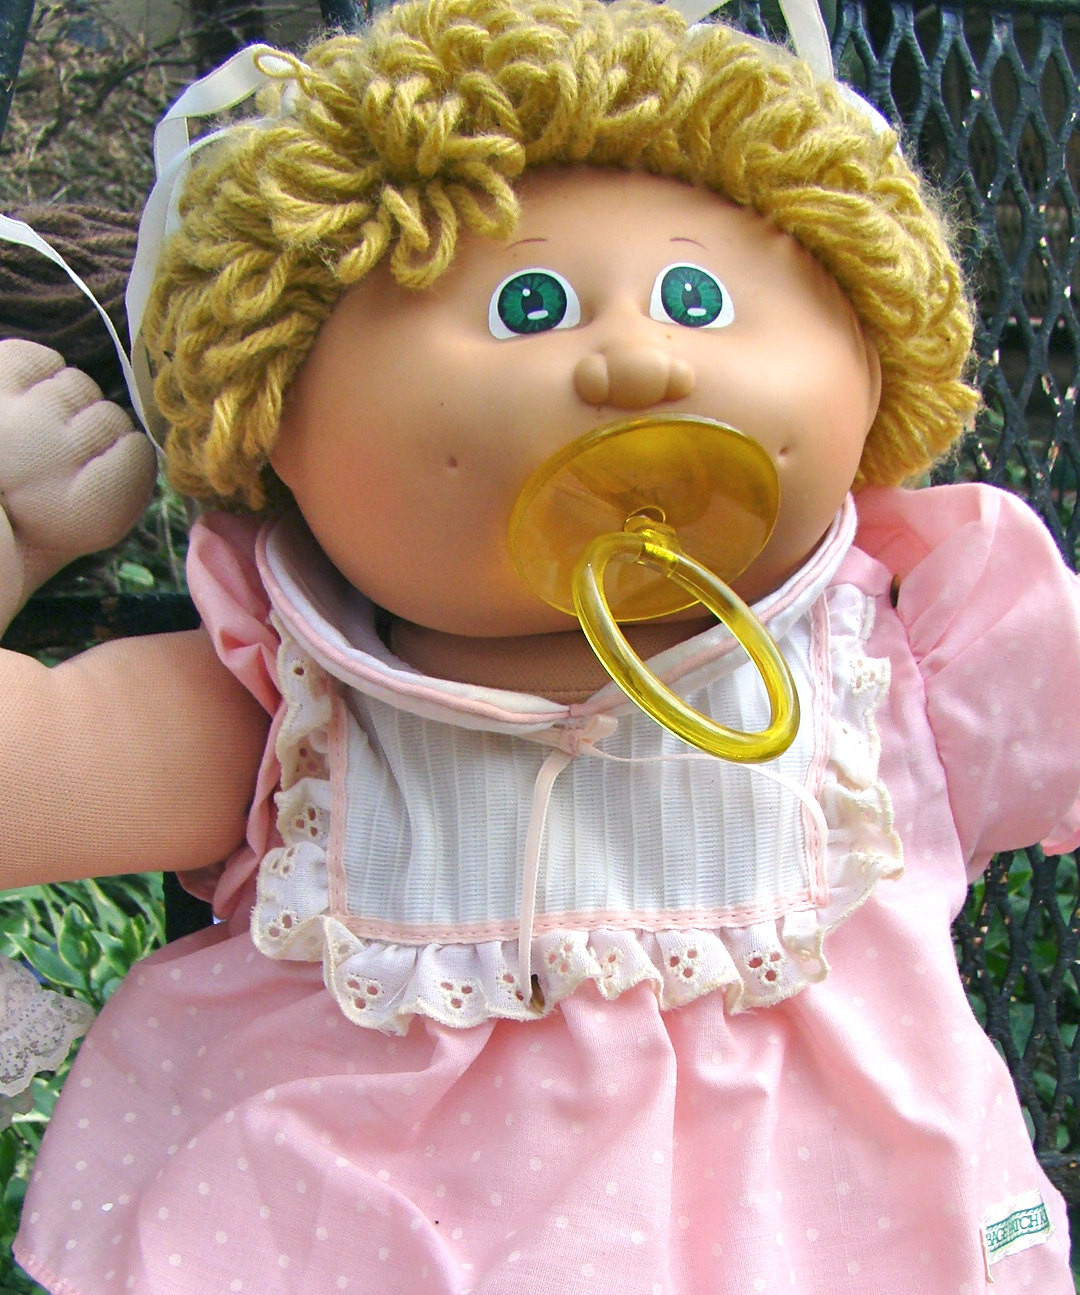 Original Cabbage Patch Dolls Awesome Cabbage Patch Girl Doll 1982 with original by Ramshacklevilla Of Incredible 43 Ideas original Cabbage Patch Dolls